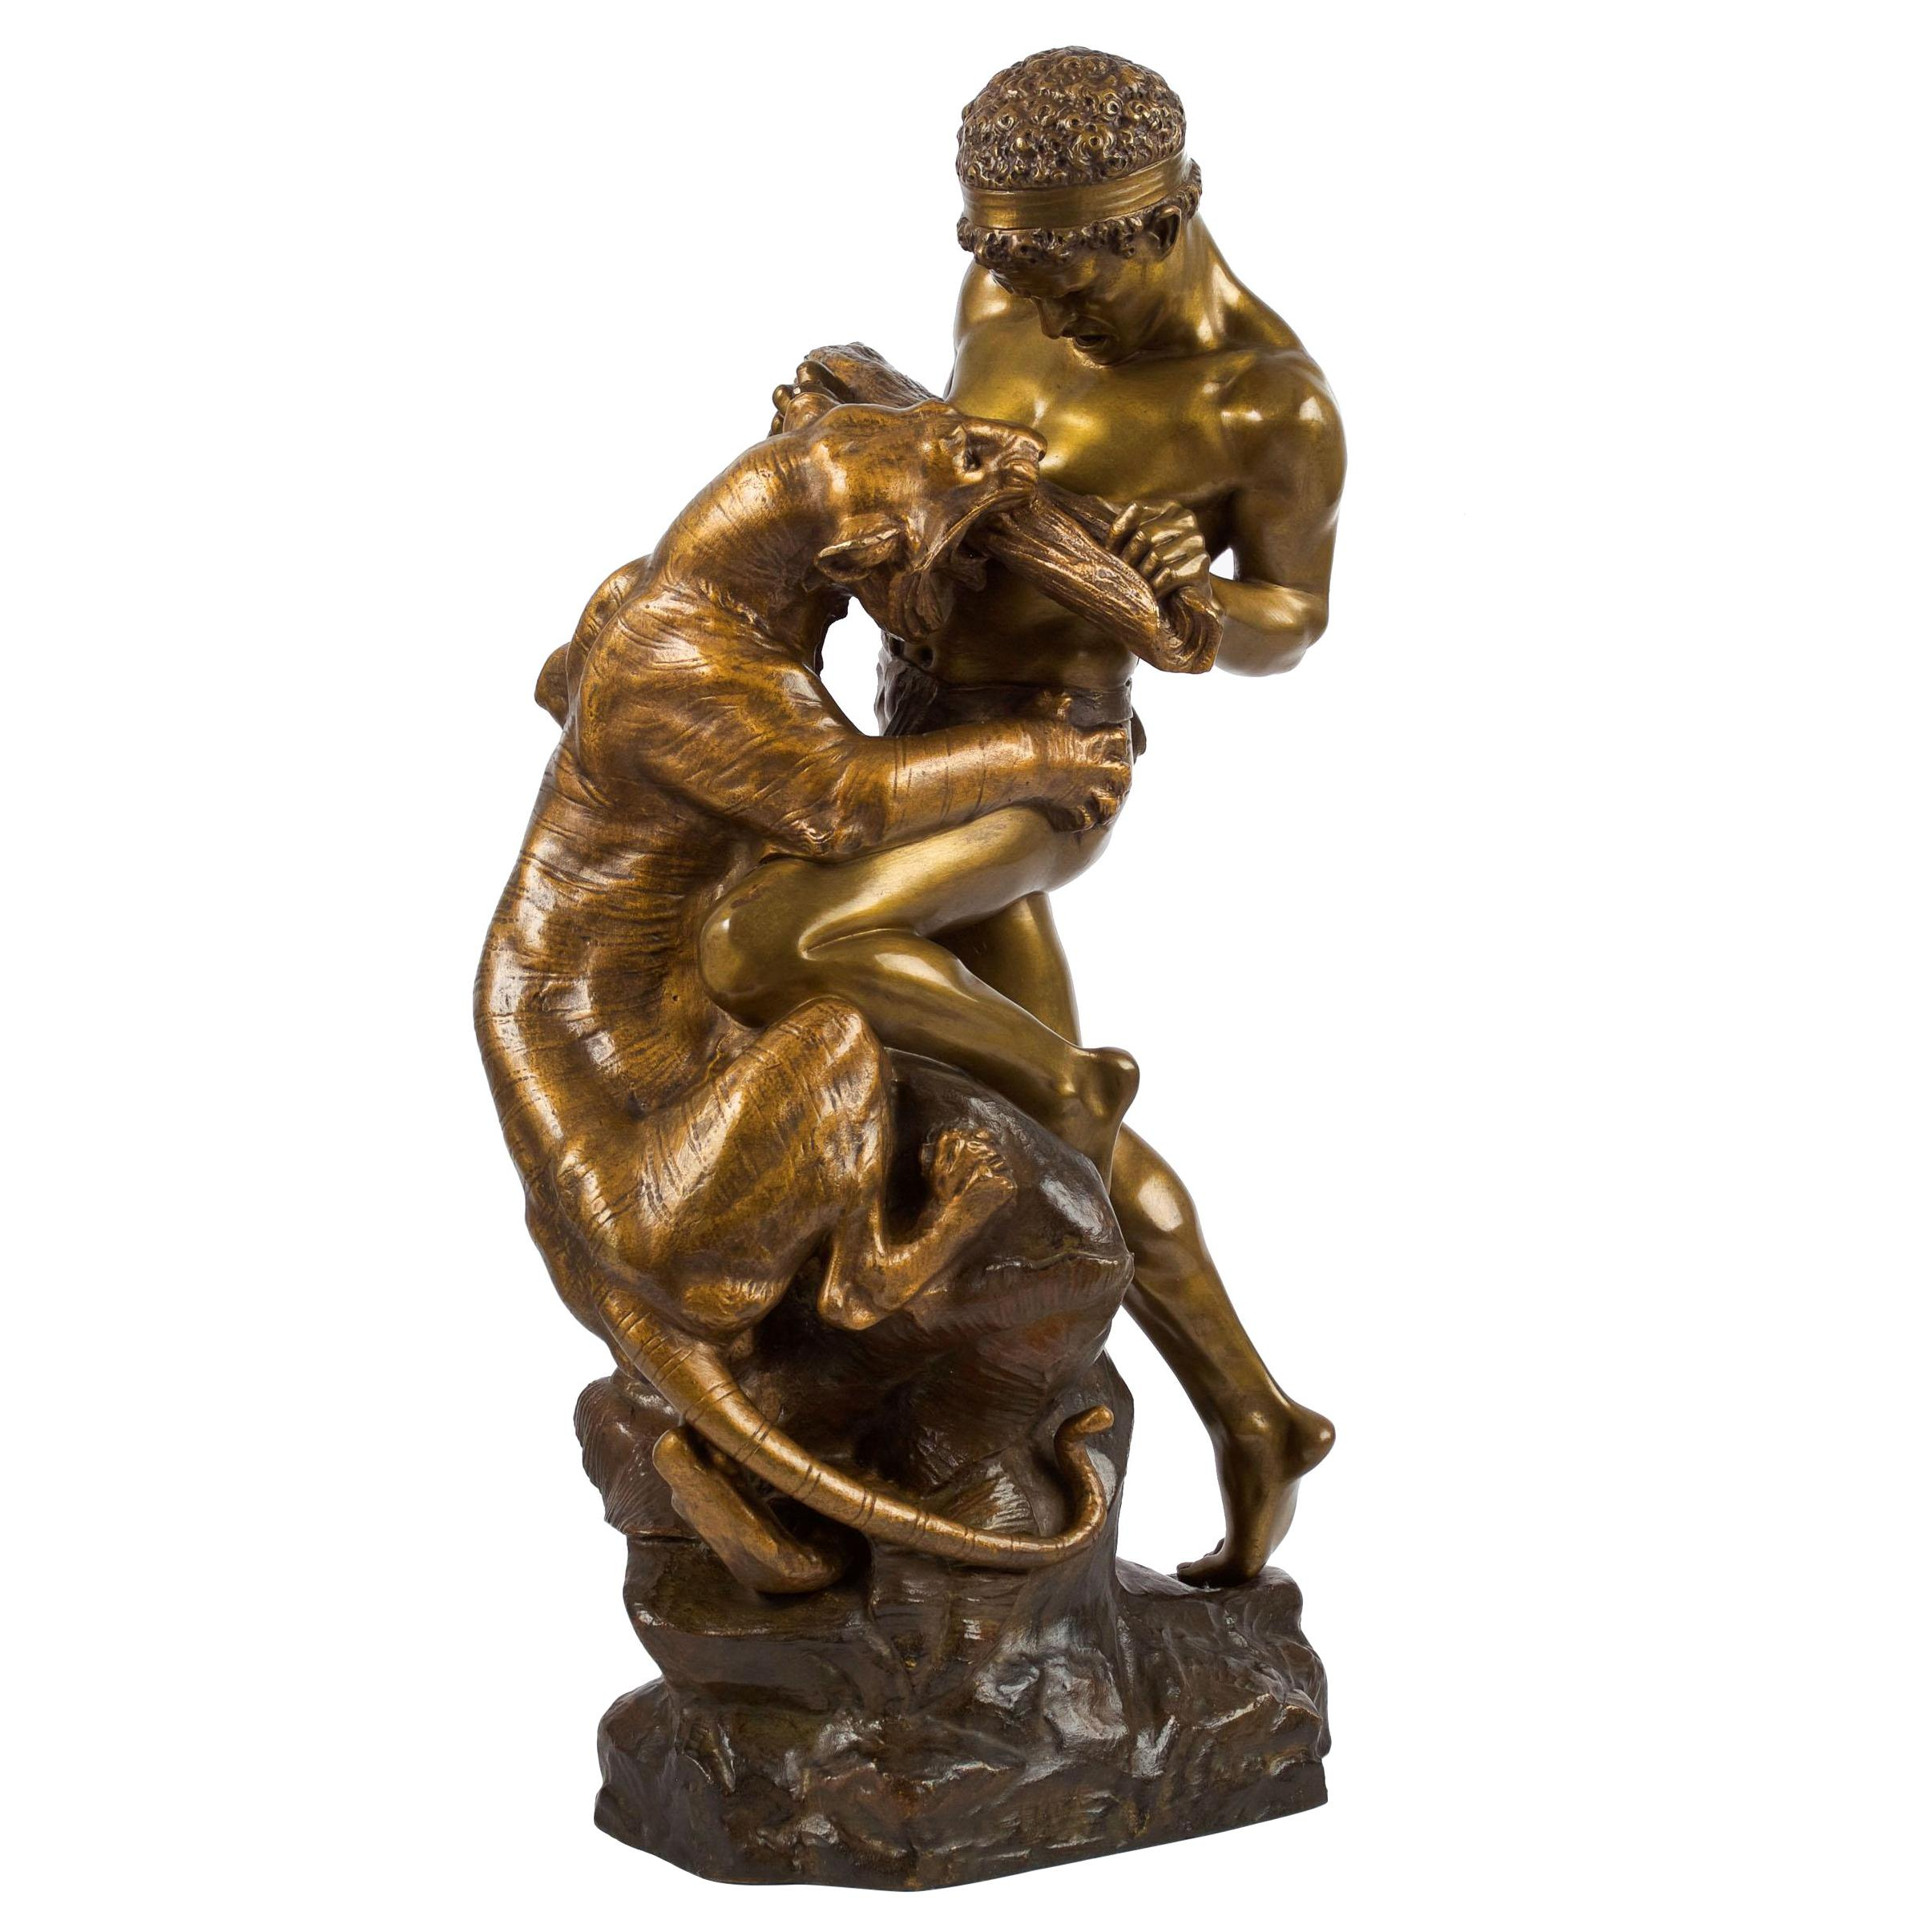 Antique French Sculpture of Man Fighting Tiger by Edouard Drouot